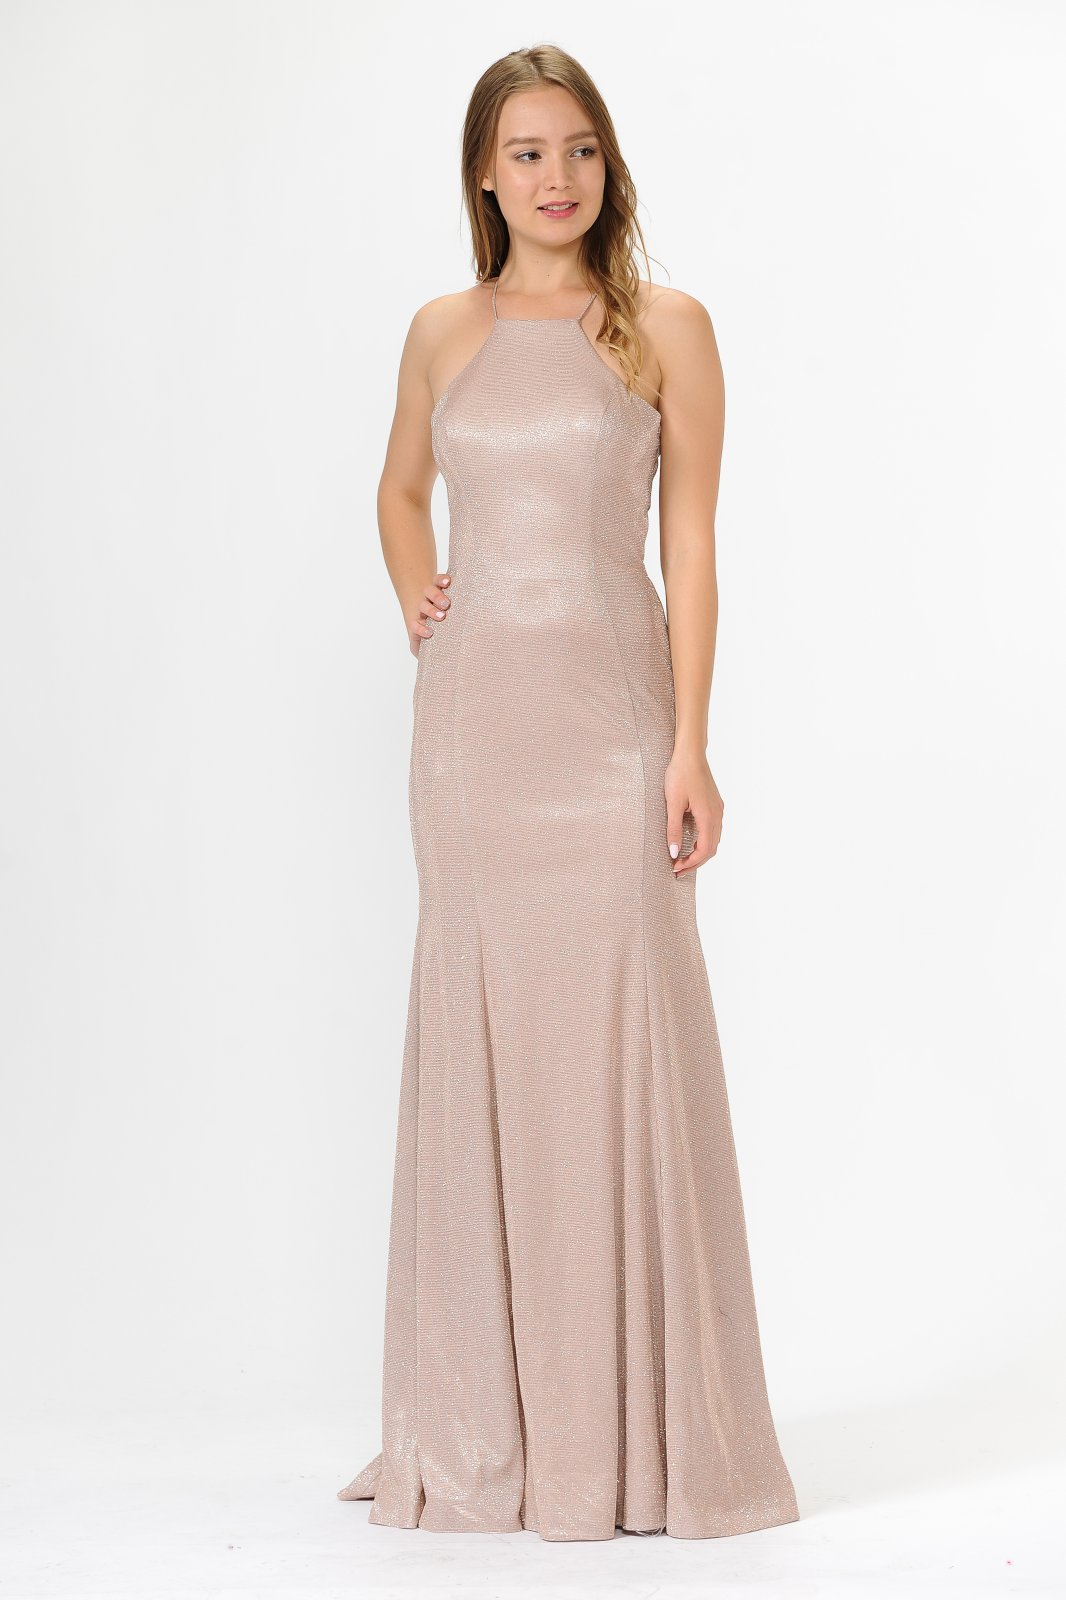 Long Rose metallic glitter dress with halter neck and sexy back cutout.